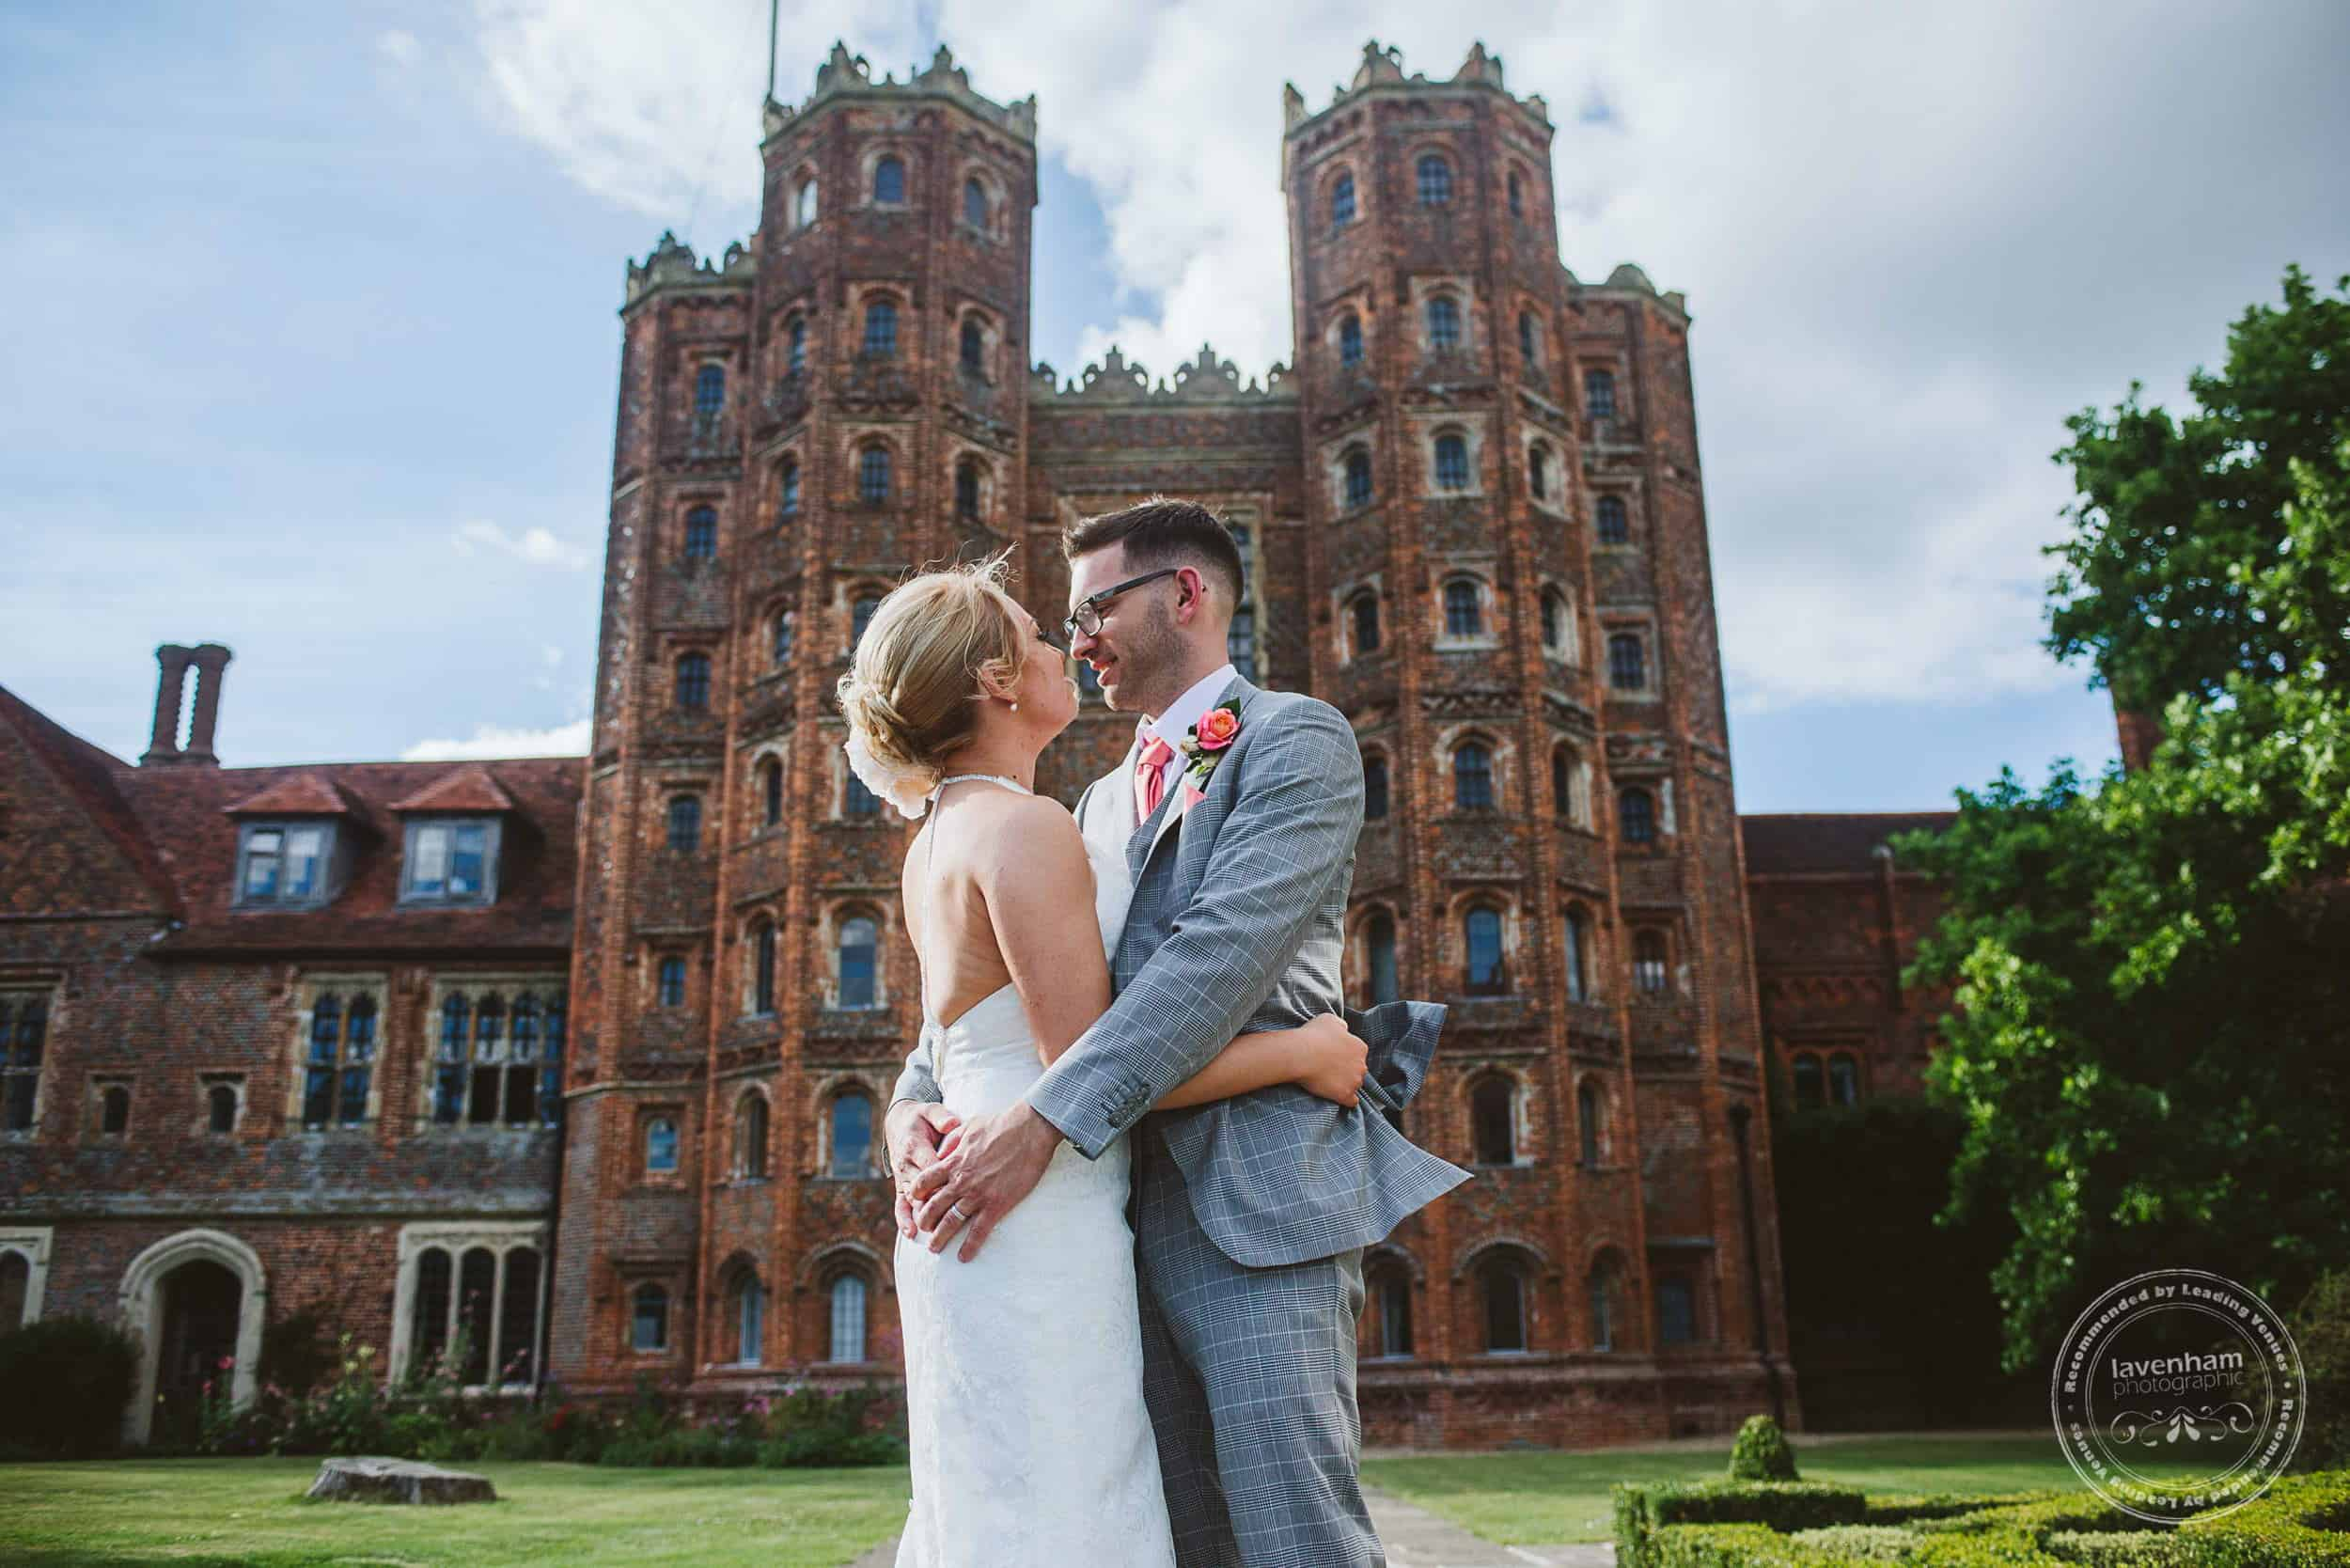 140717 Layer Marney Wedding Photography by Lavenham Photographic 106